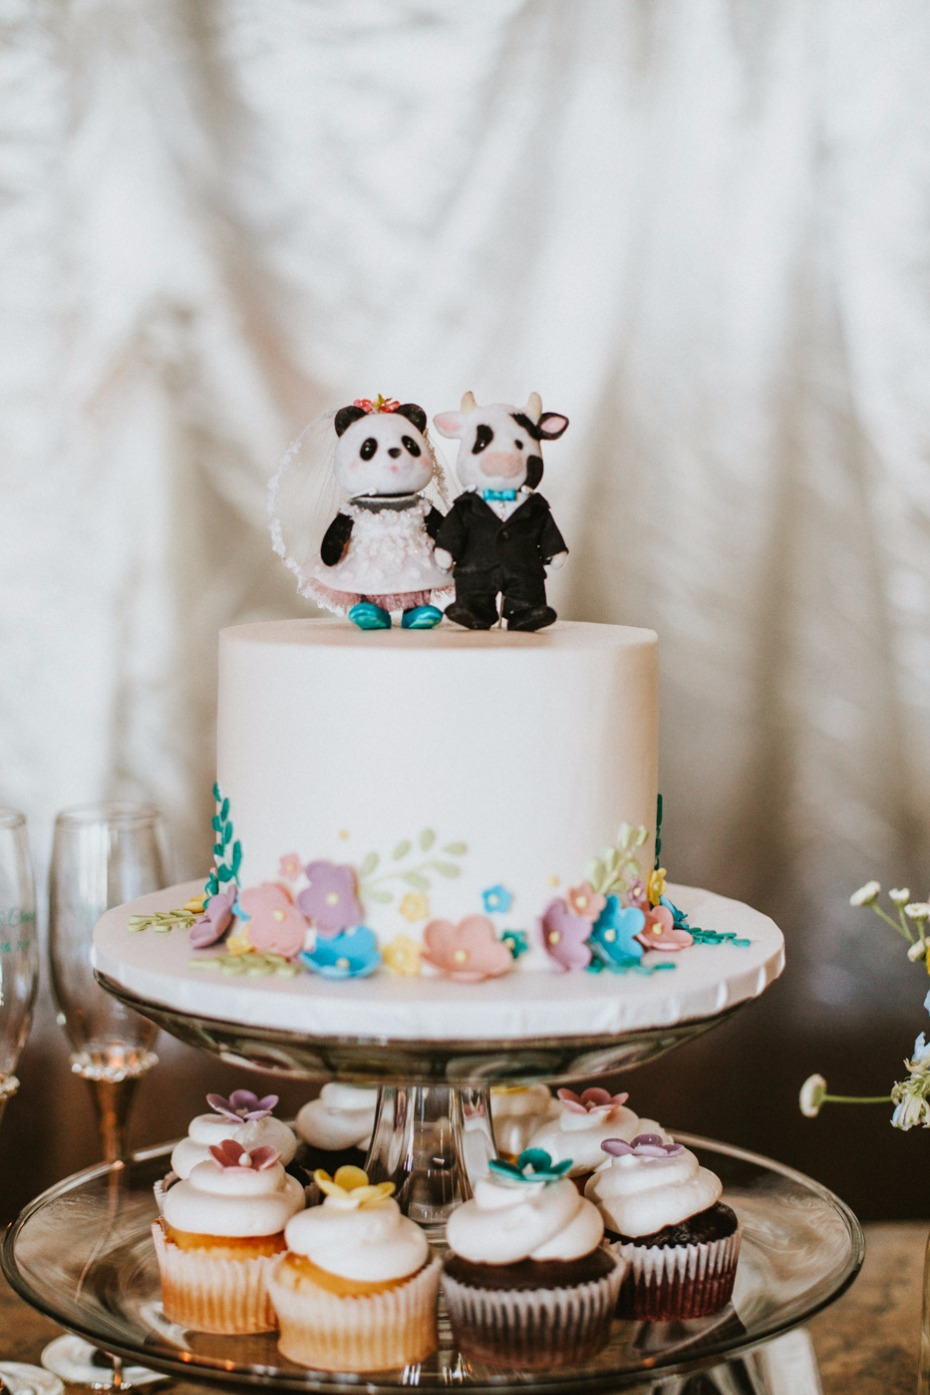 Panda and cow topper